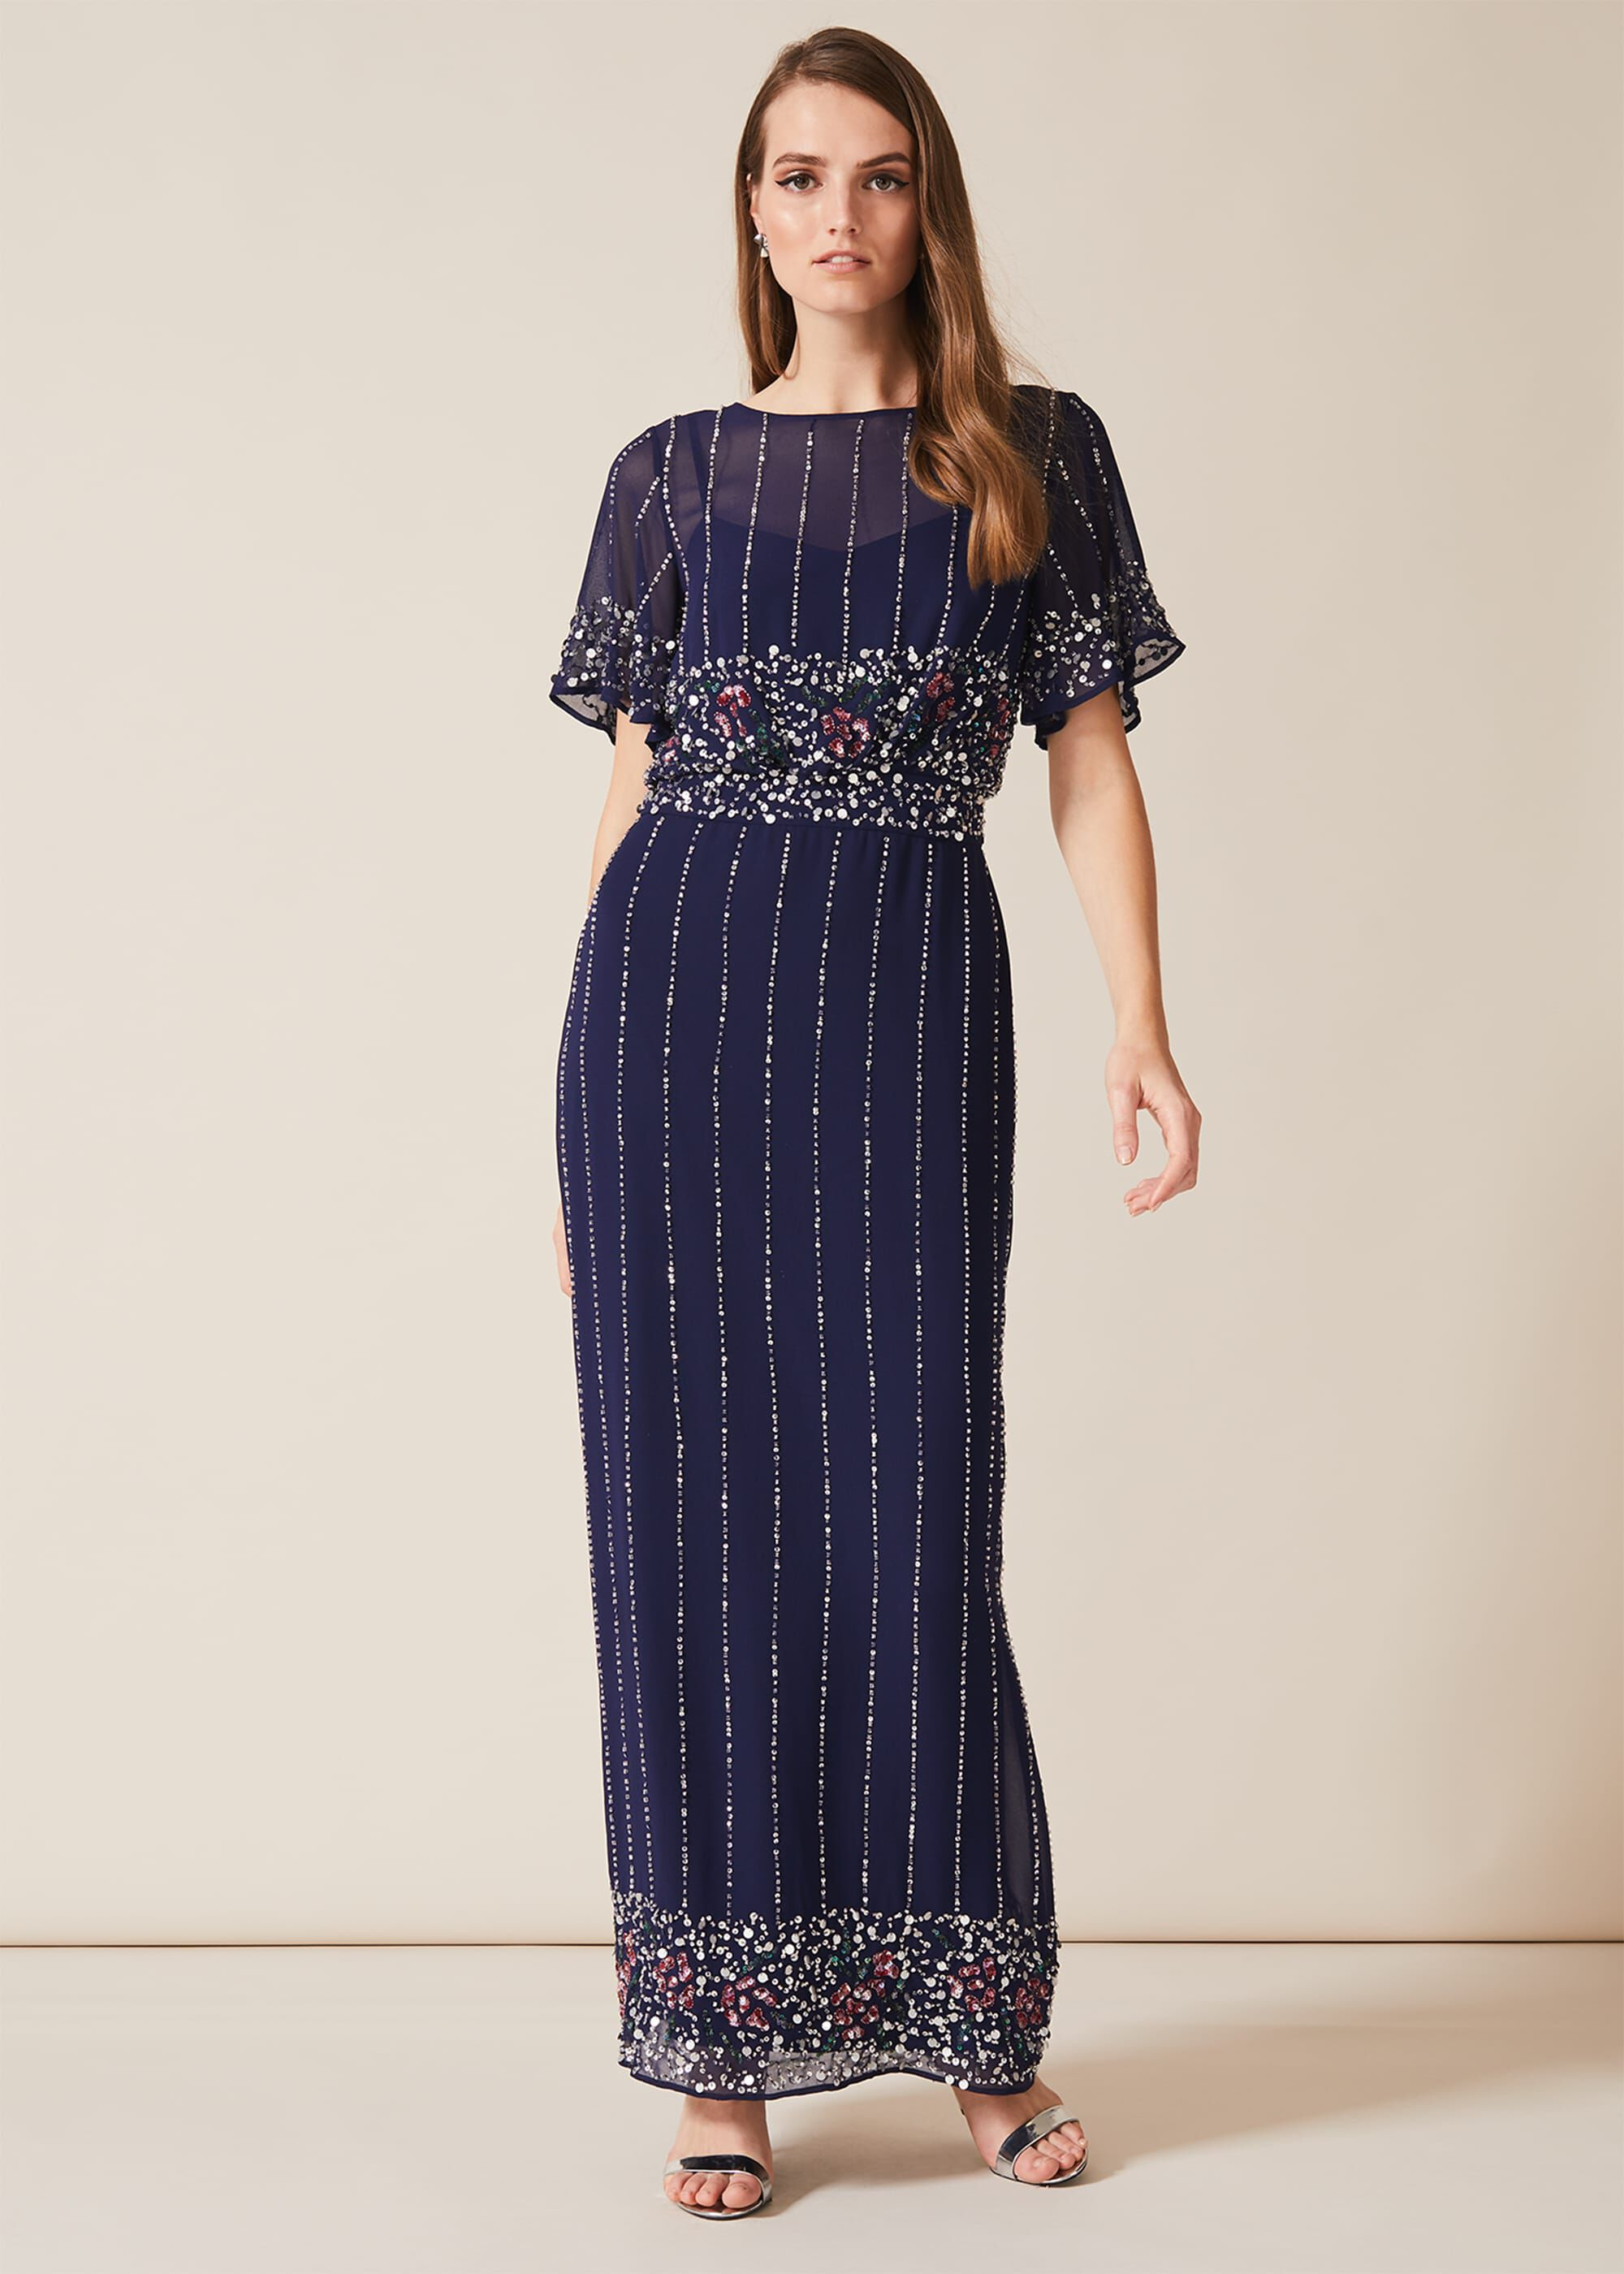 1930s Evening Dresses | Old Hollywood Dress Phase Eight Doris Beaded Dress Blue Maxi Occasion Dress £325.00 AT vintagedancer.com